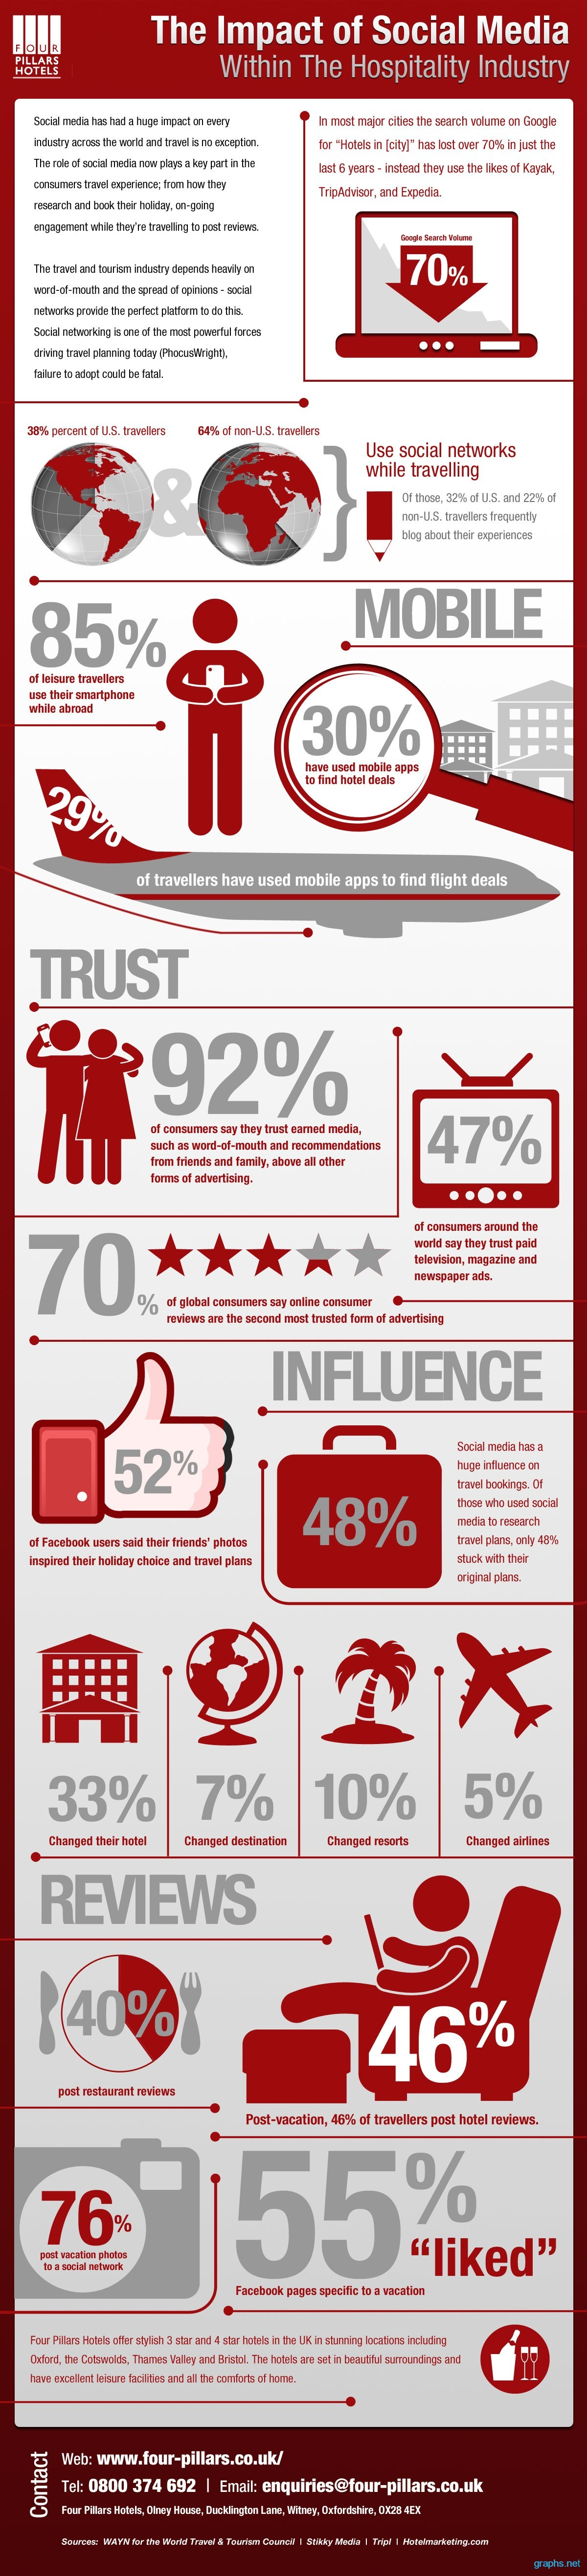 impact social media travel industry